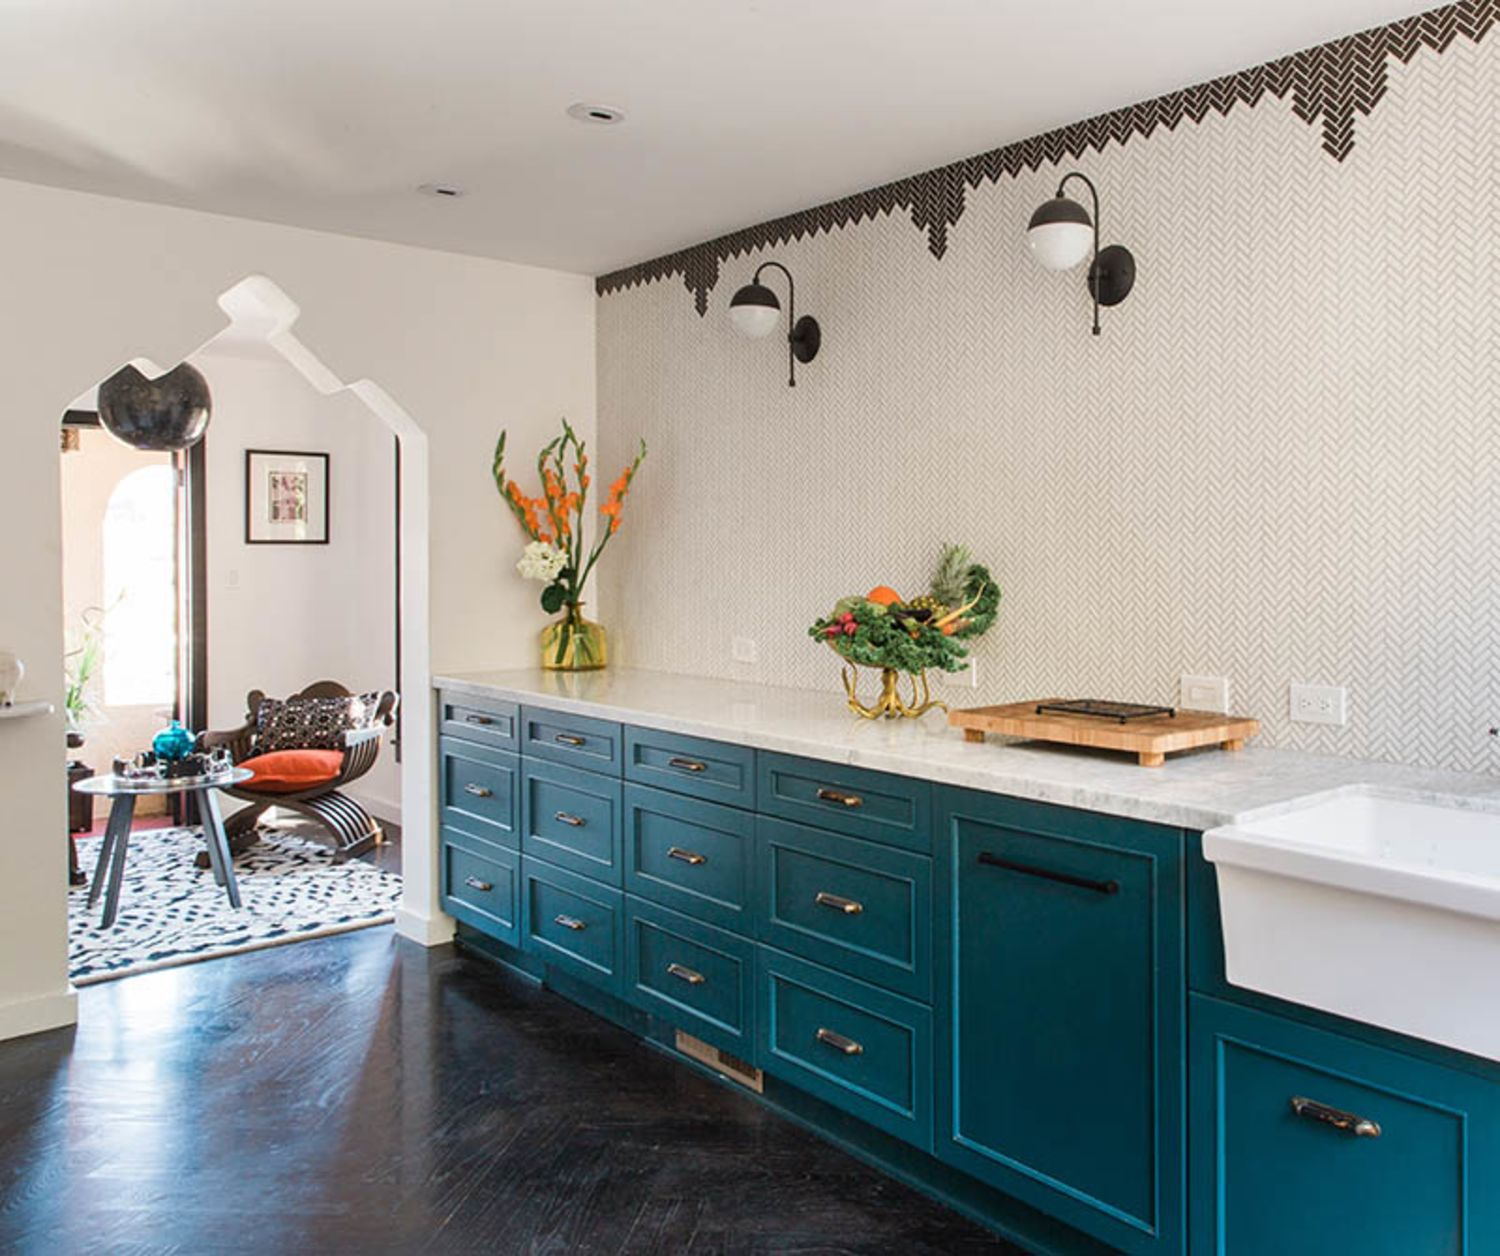 Dark Kitchen Cabinets: Color Ideas For The Kitchen: Dark Teal Cabinets